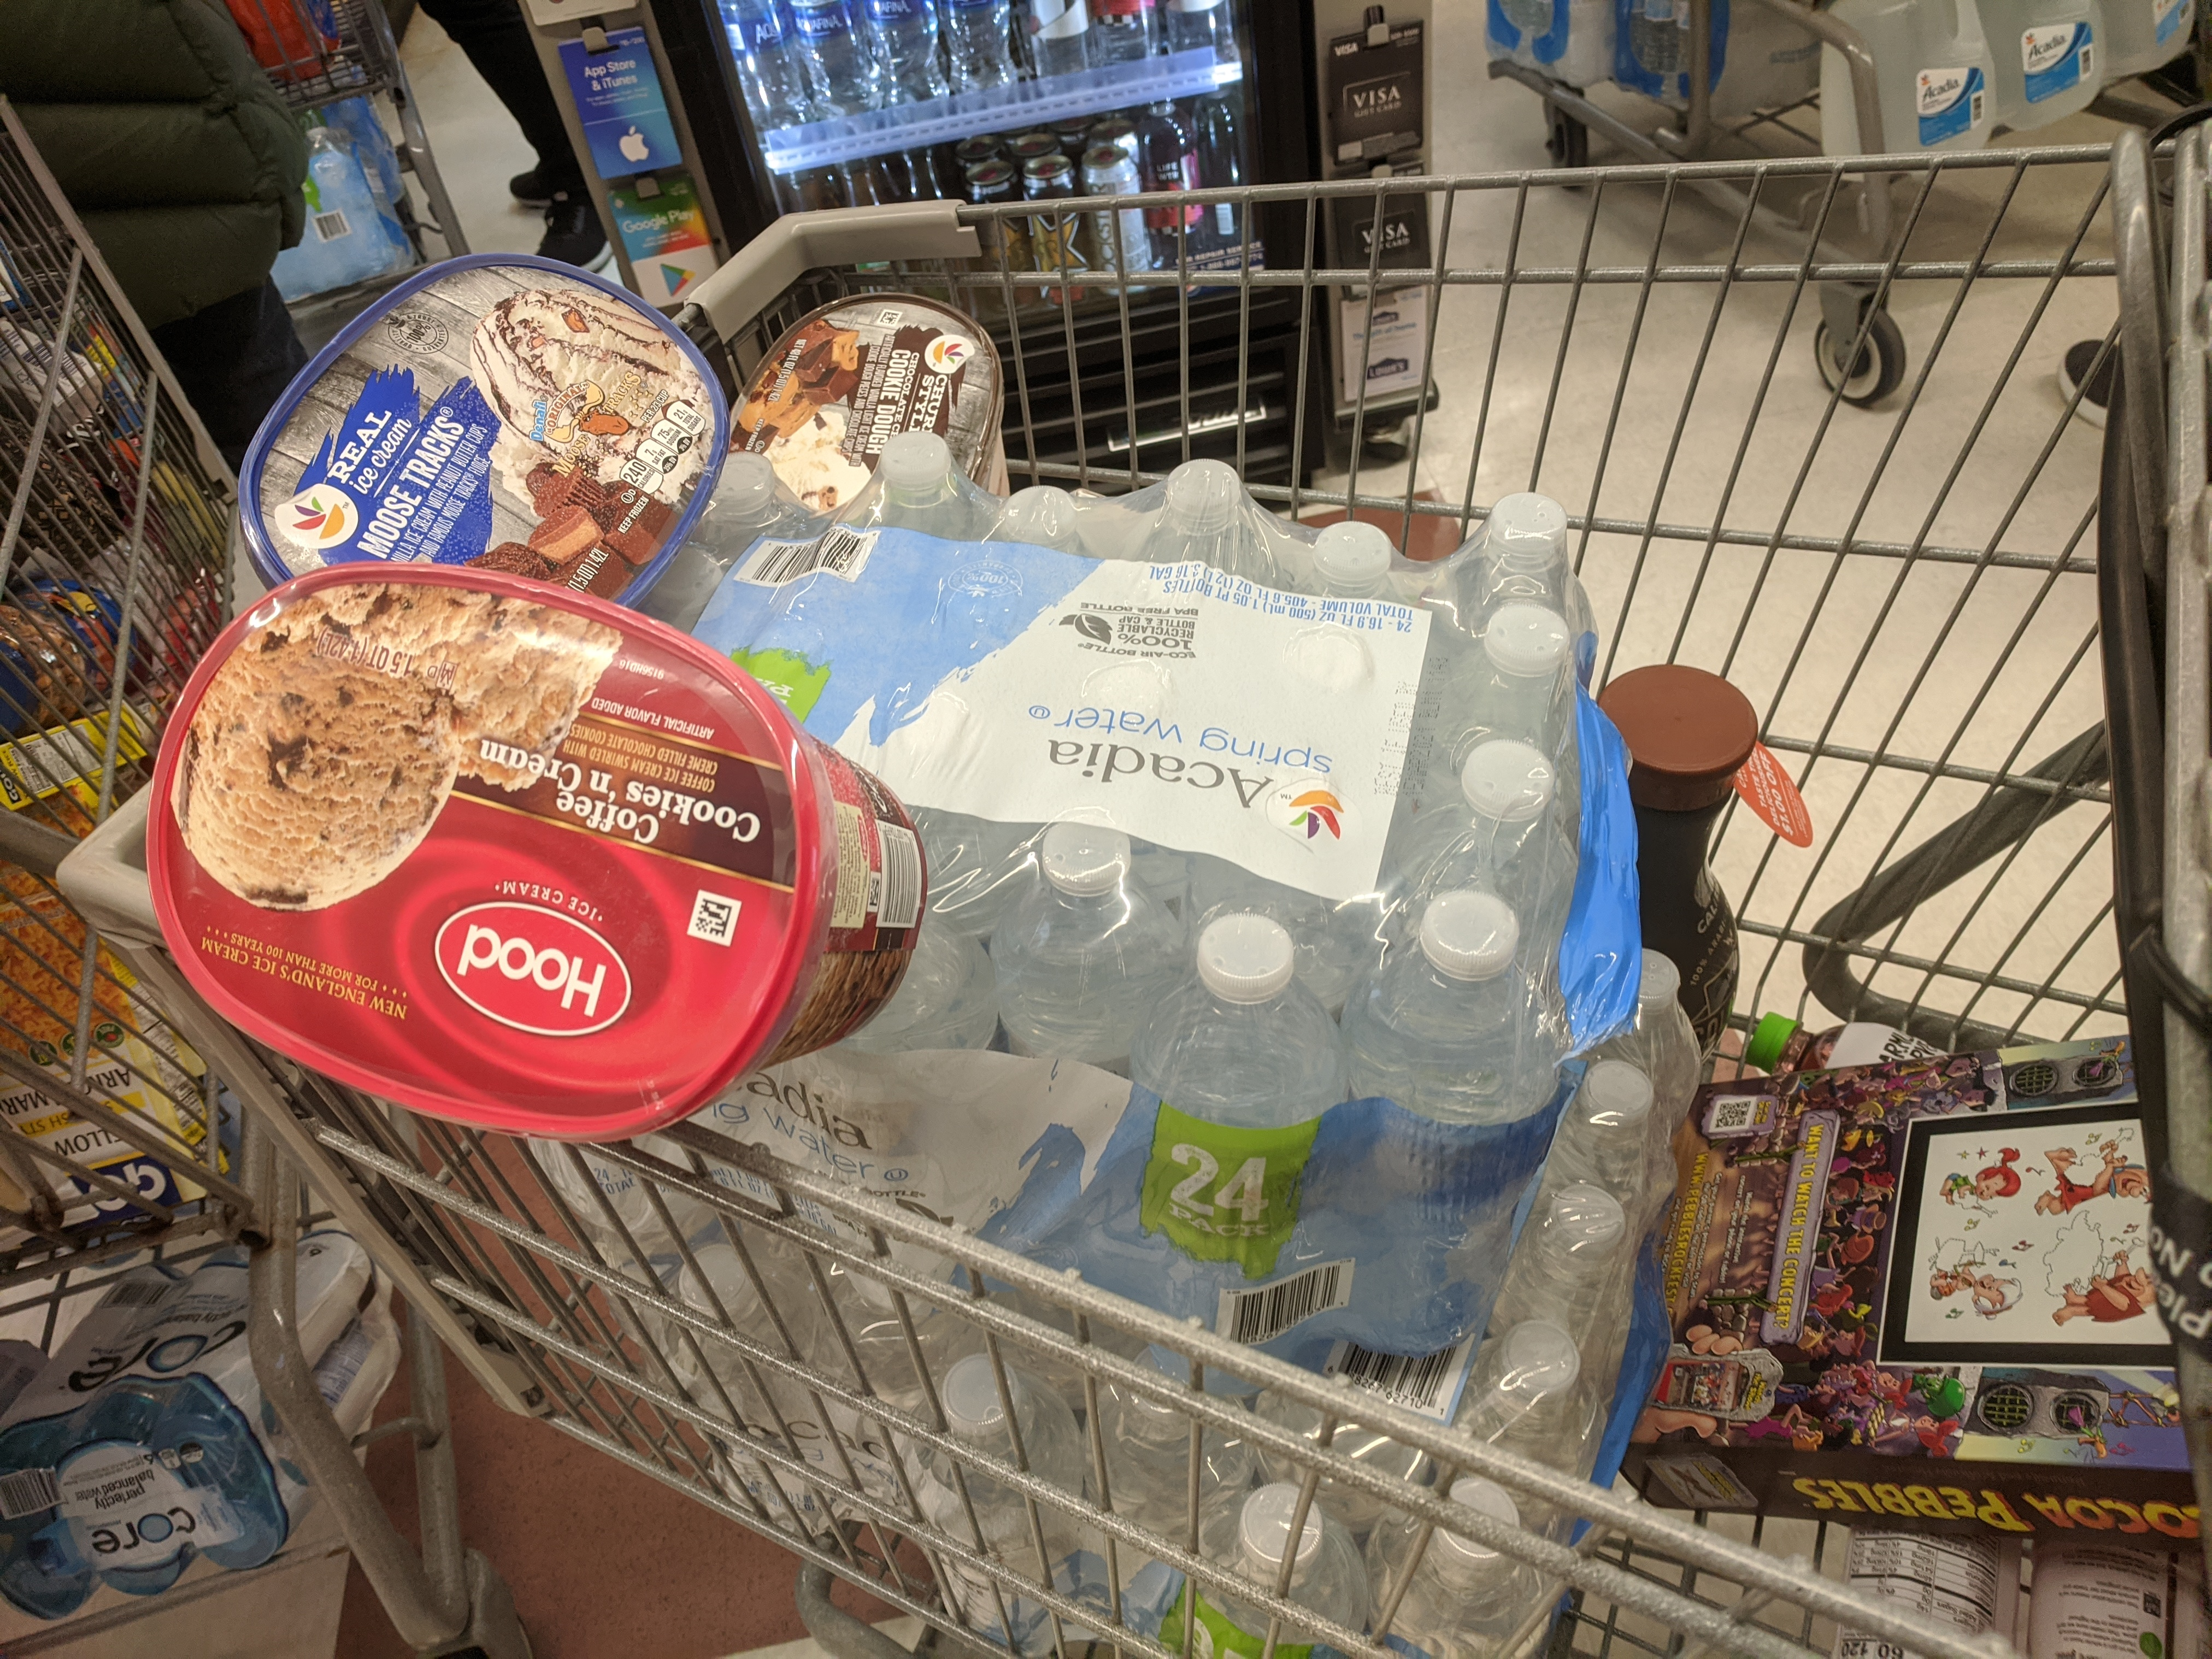 the essentials_ice cream and water_one shopper's cart at stop & shop Gloucester MA_20200312 ©c ryan